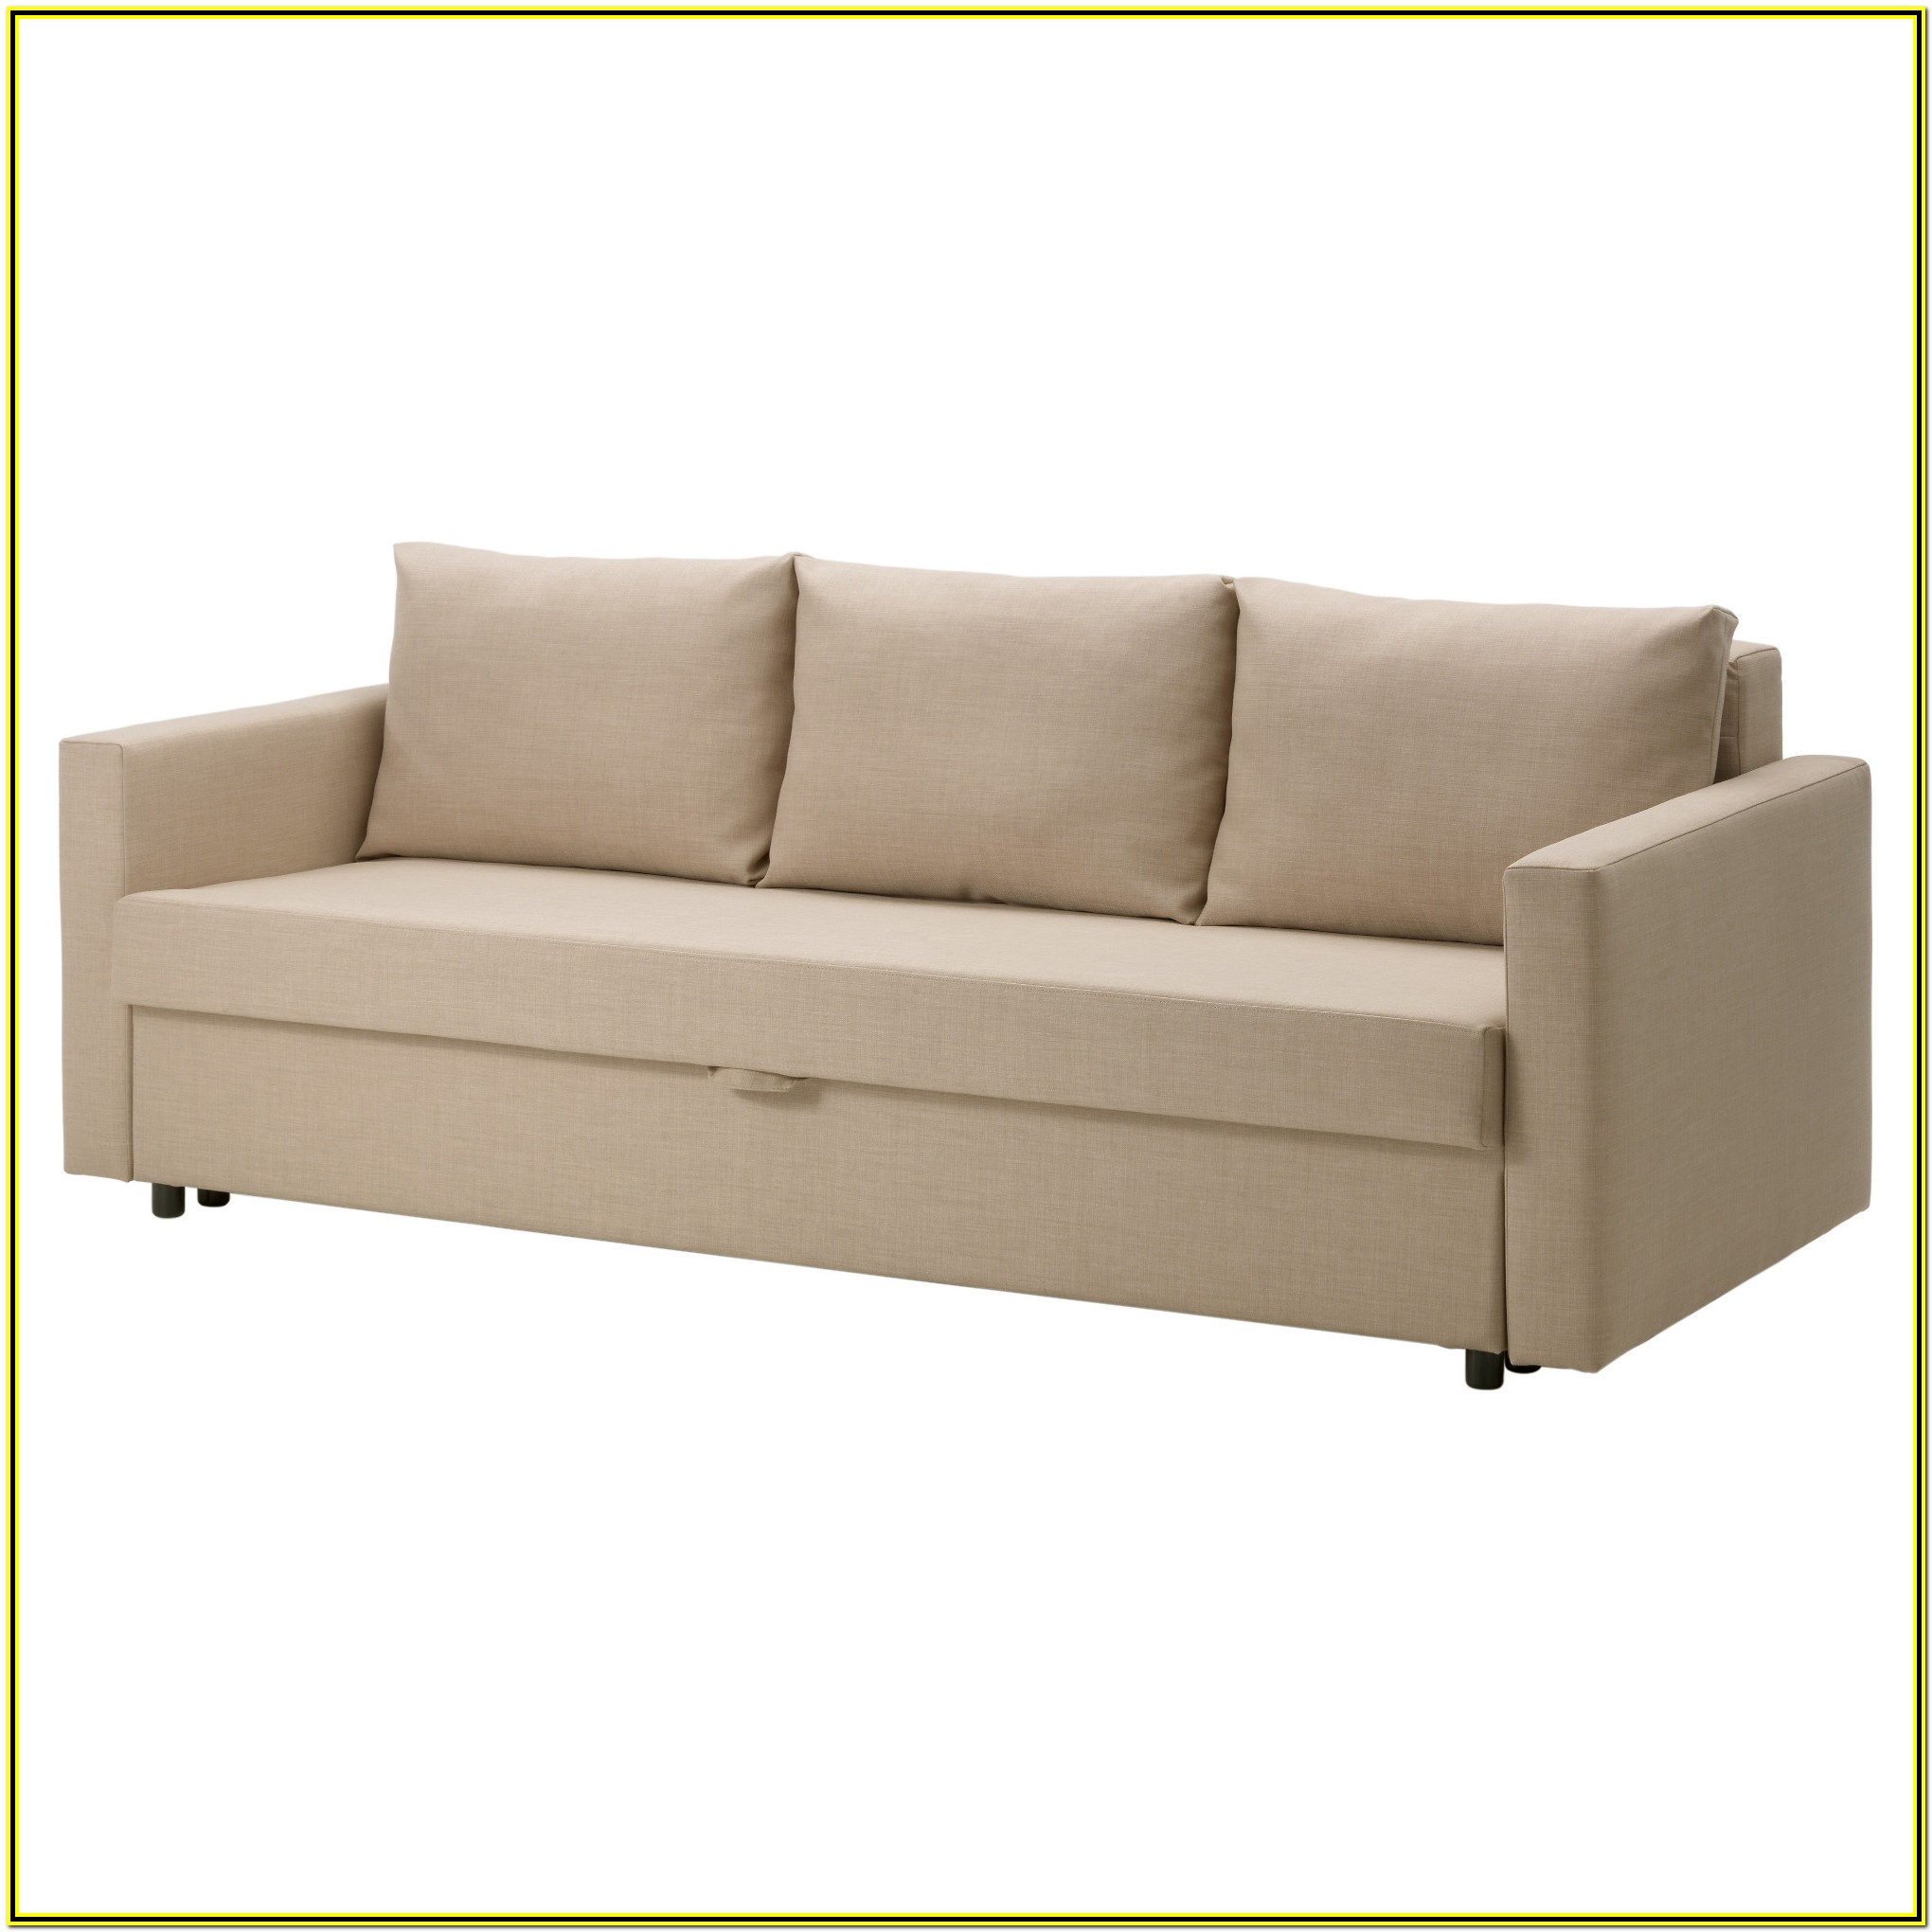 Loveseat Pull Out Sofa Bed